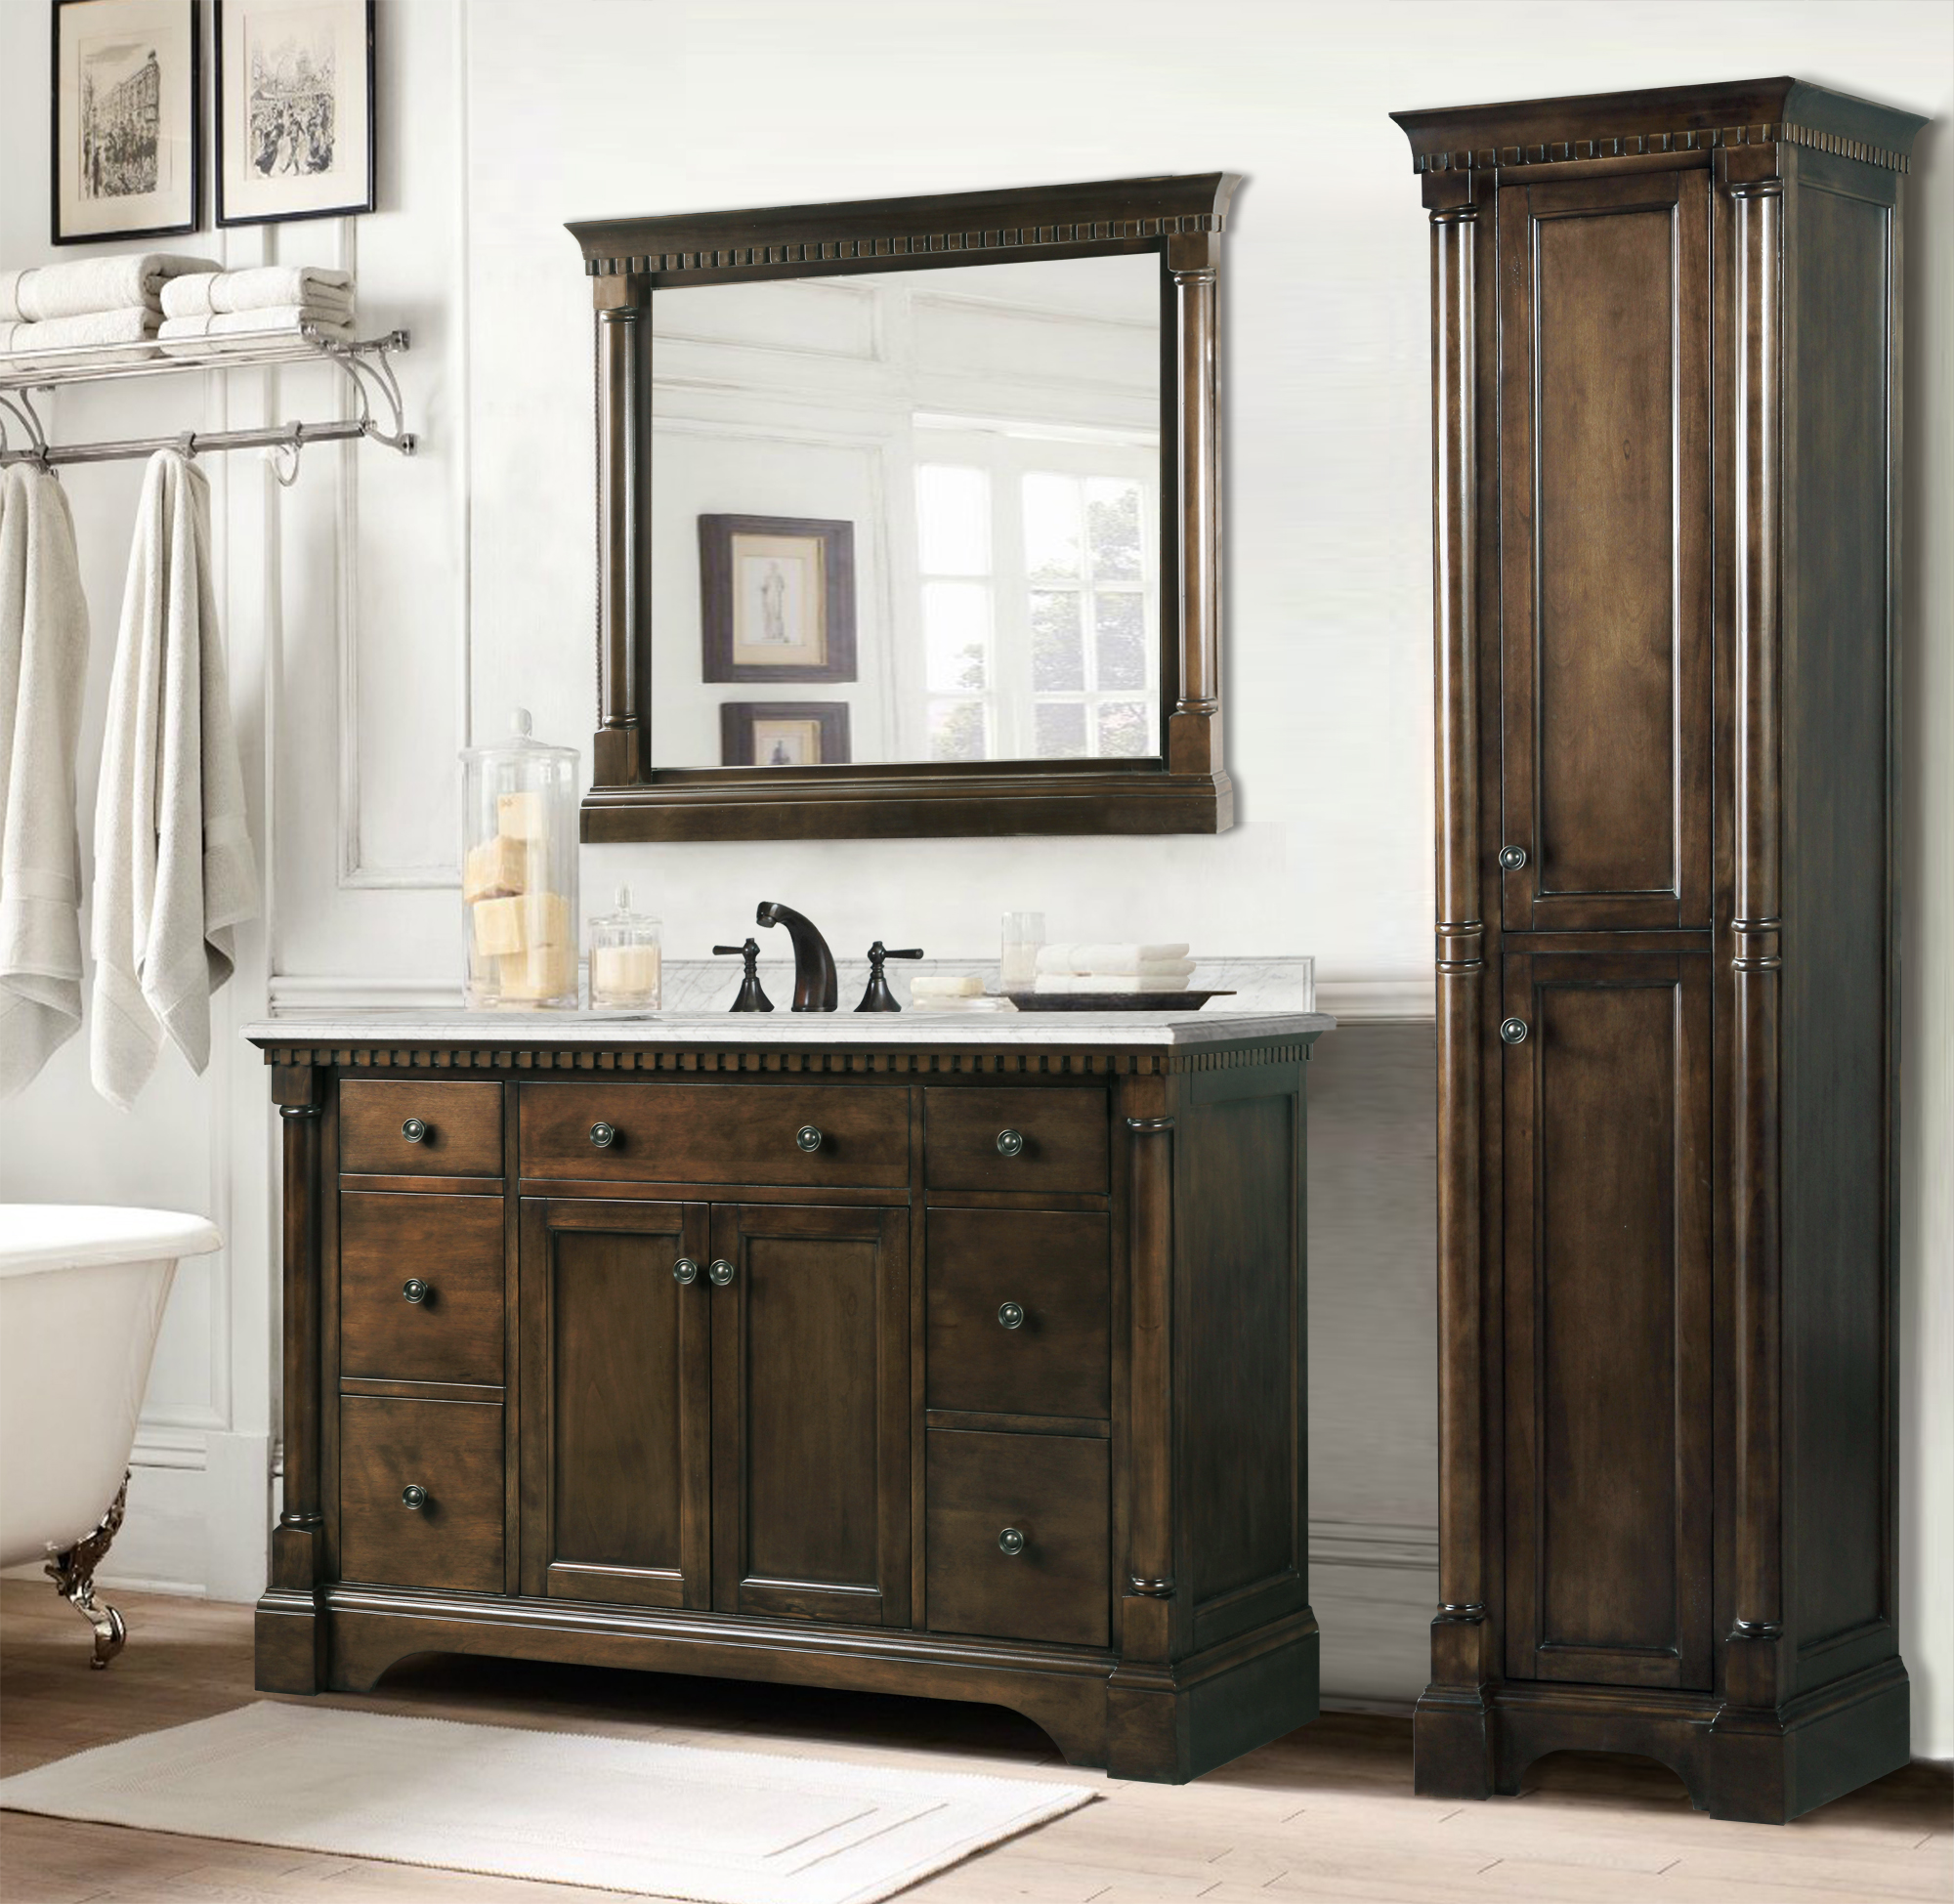 Bathroom Cabinets 48 Inch many people are looking for new bathroom vanities to remodeling